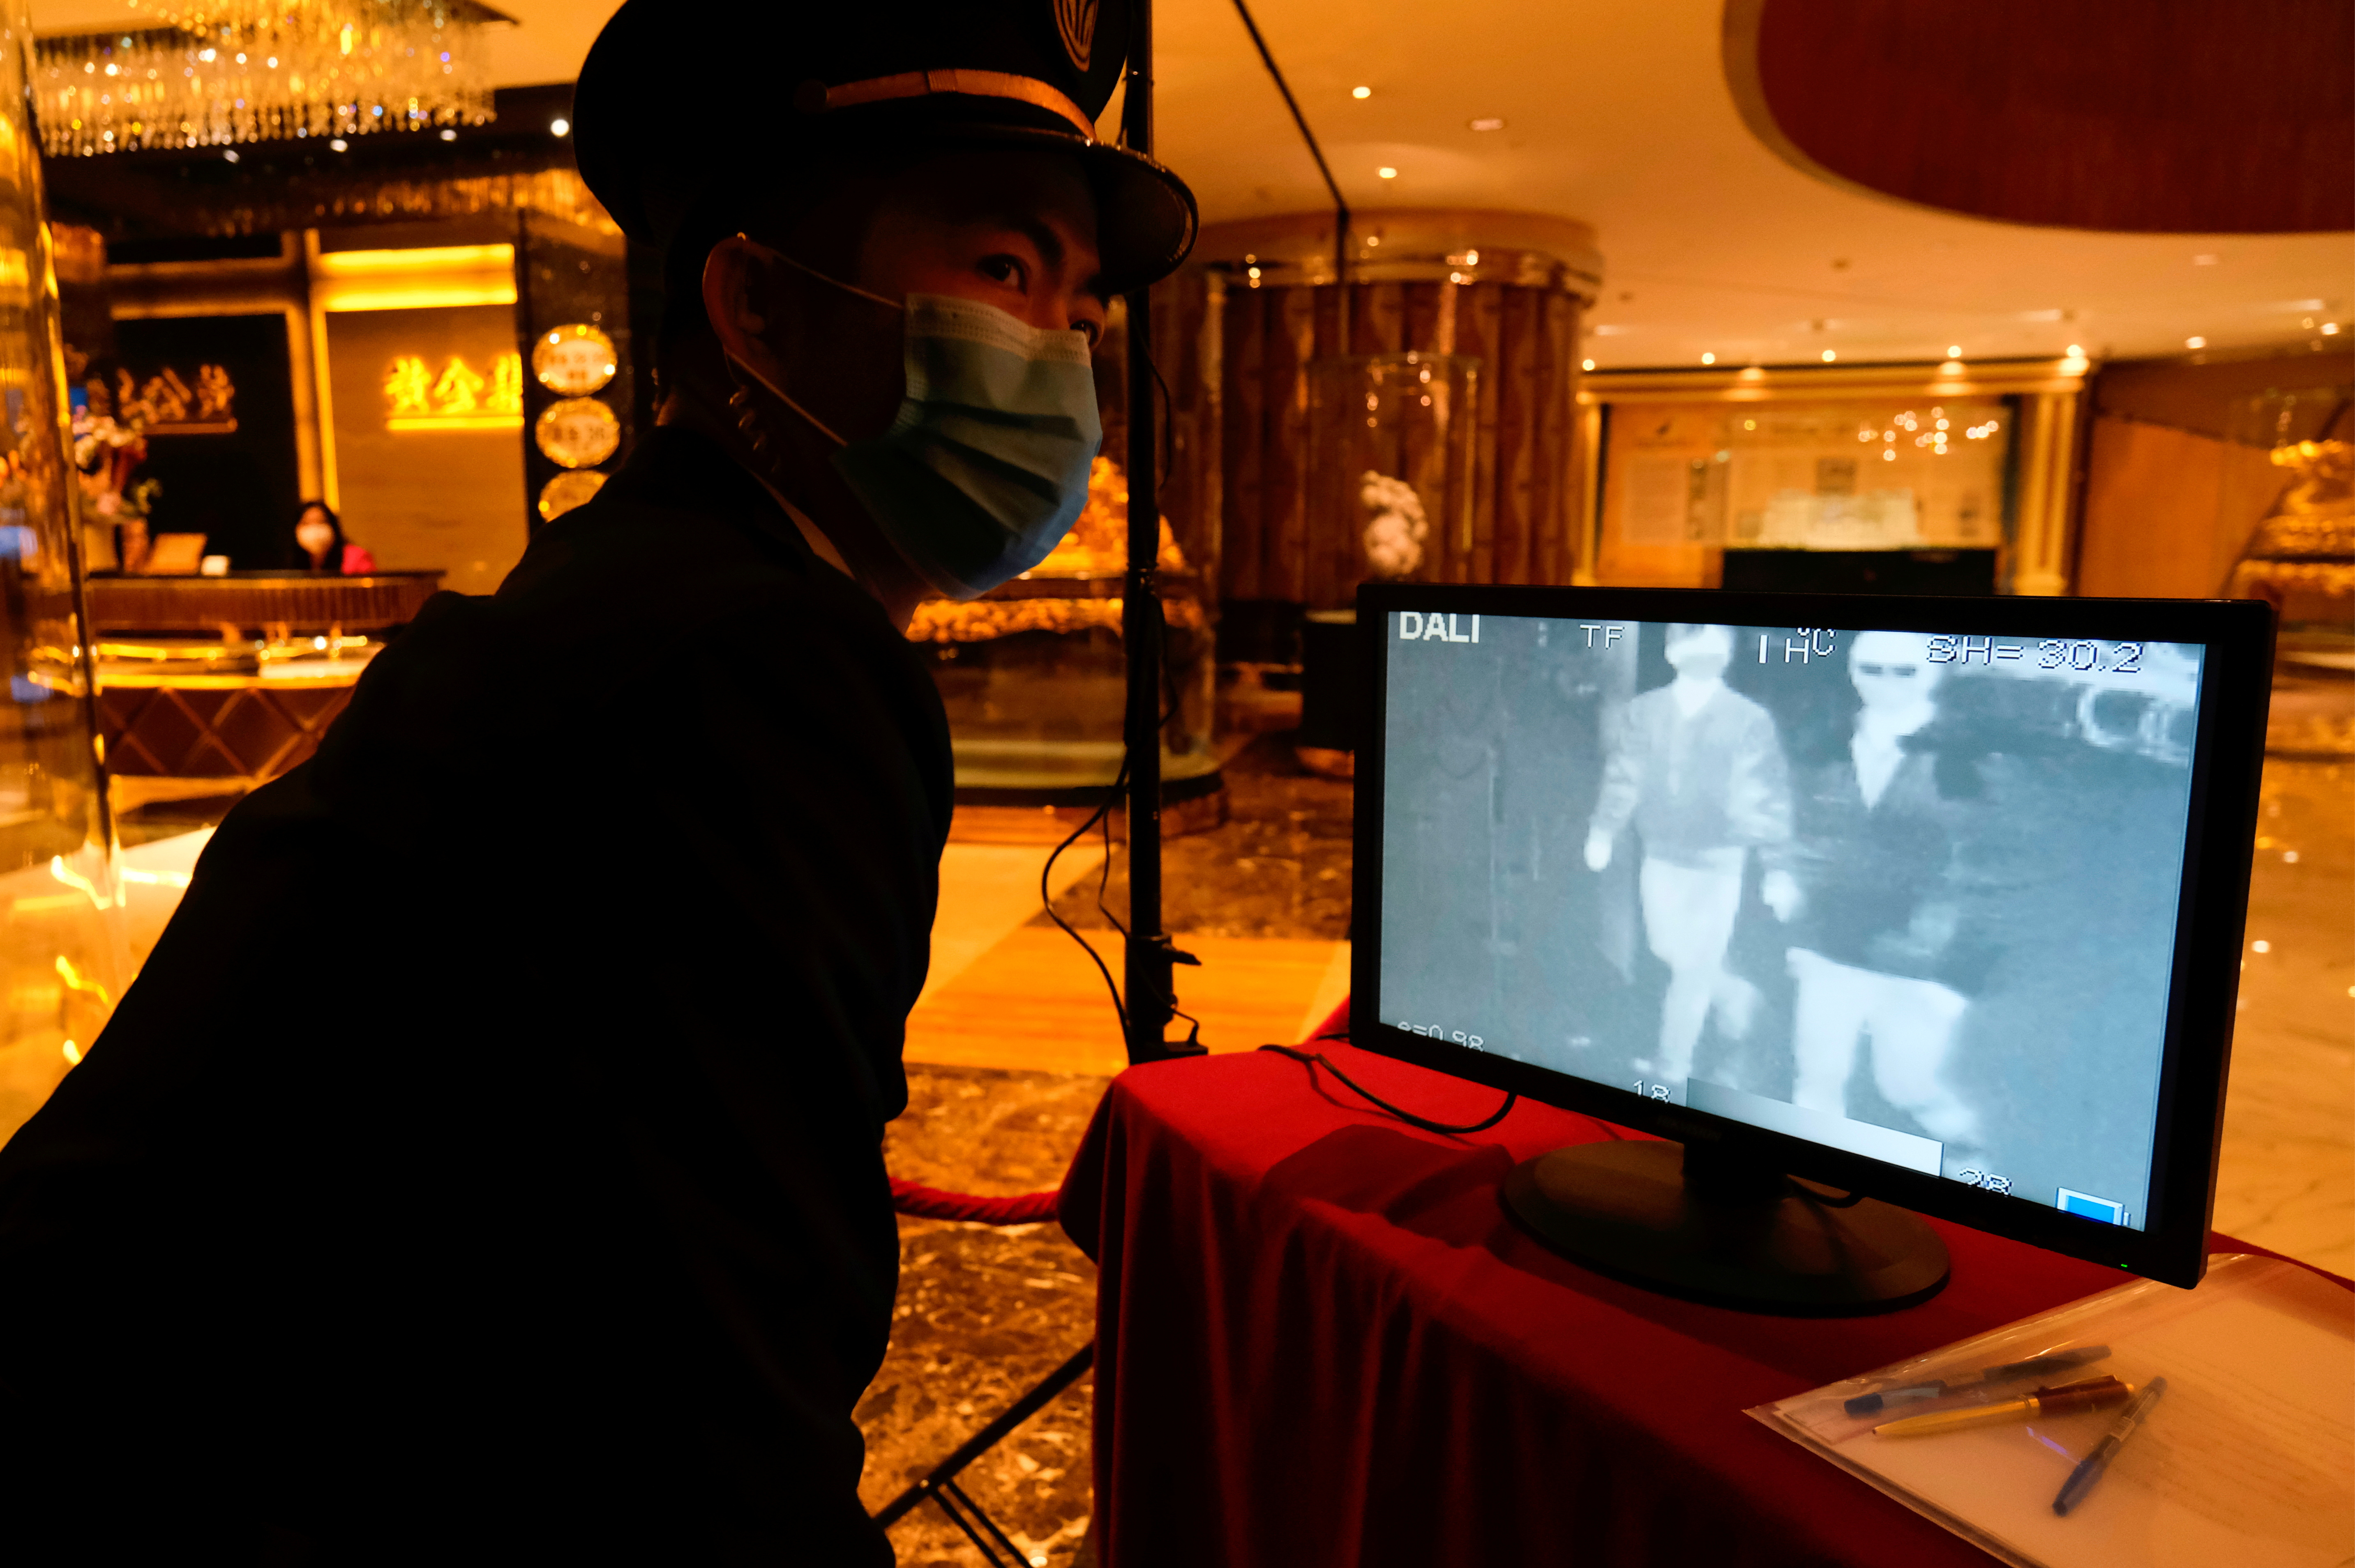 A security guard monitors thermal scanners that detect temperatures of visitors at the closed Grand Lisboa casino and hotel, following the coronavirus outbreak in Macau, China February 5, 2020. REUTERS/Tyrone Siu/File Photo